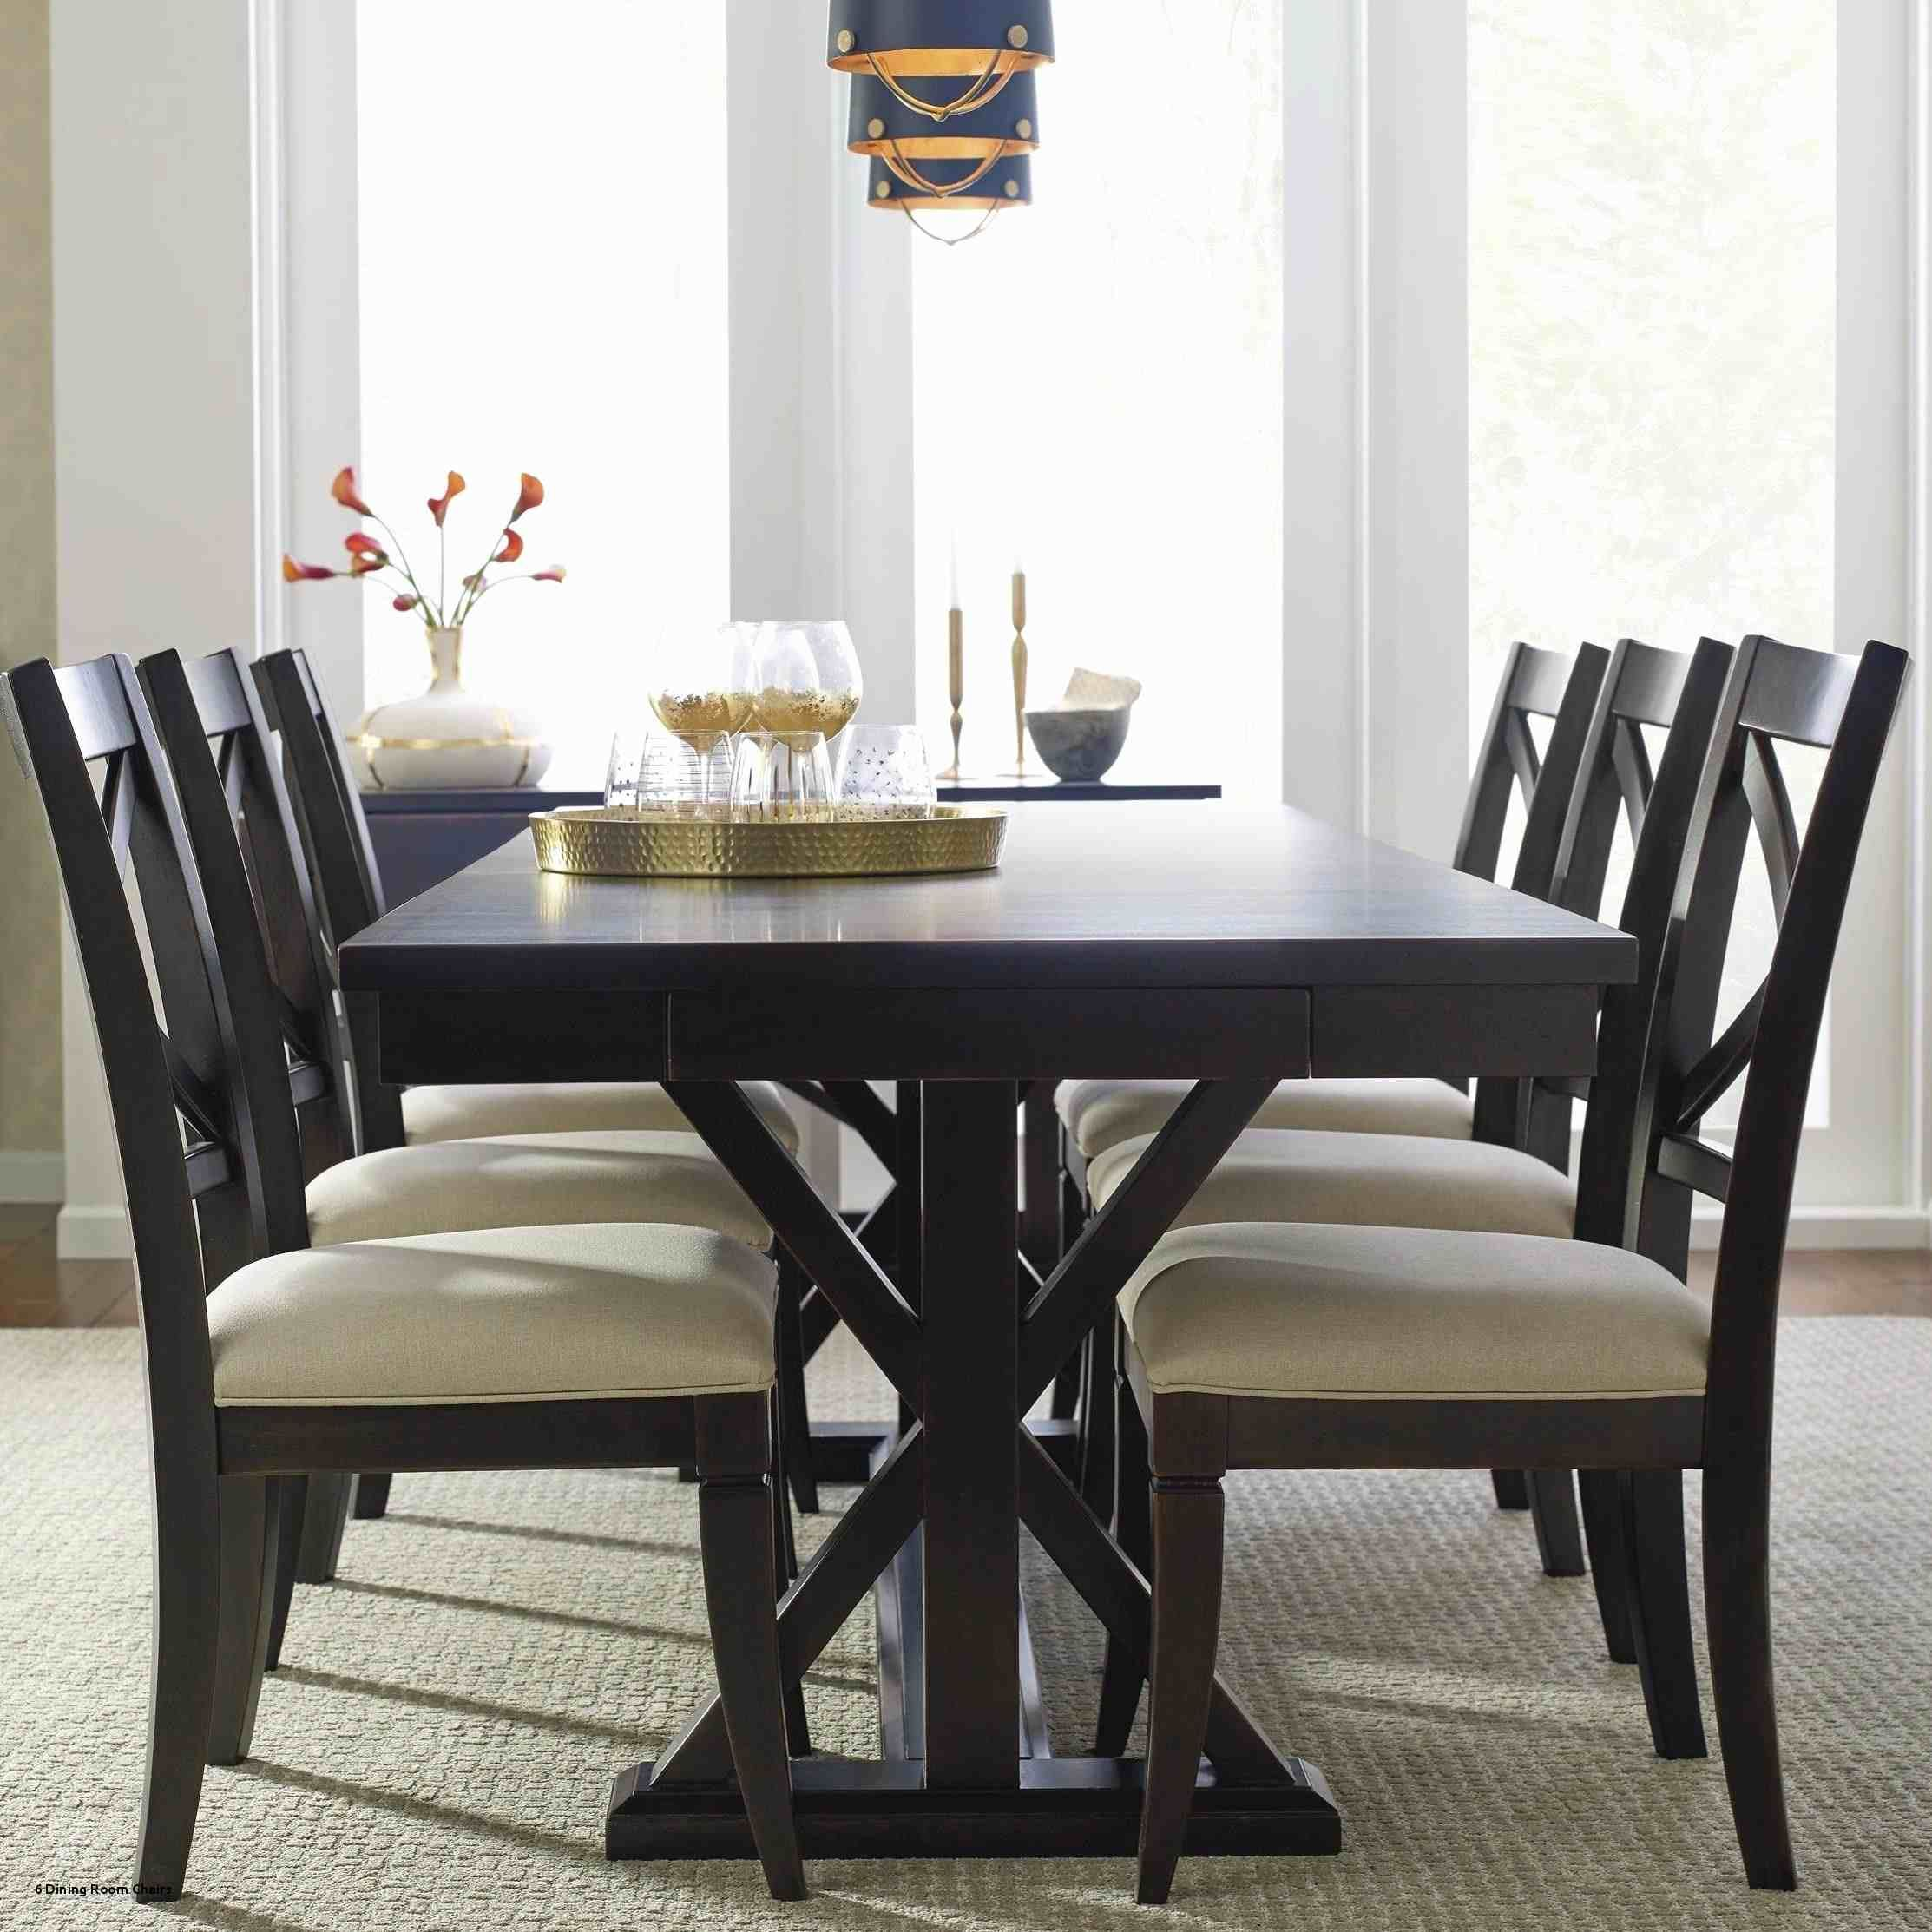 Large Black Dining Room Table Buy Dining Room Table Dining Room Table Set Cheap Dining Room Table